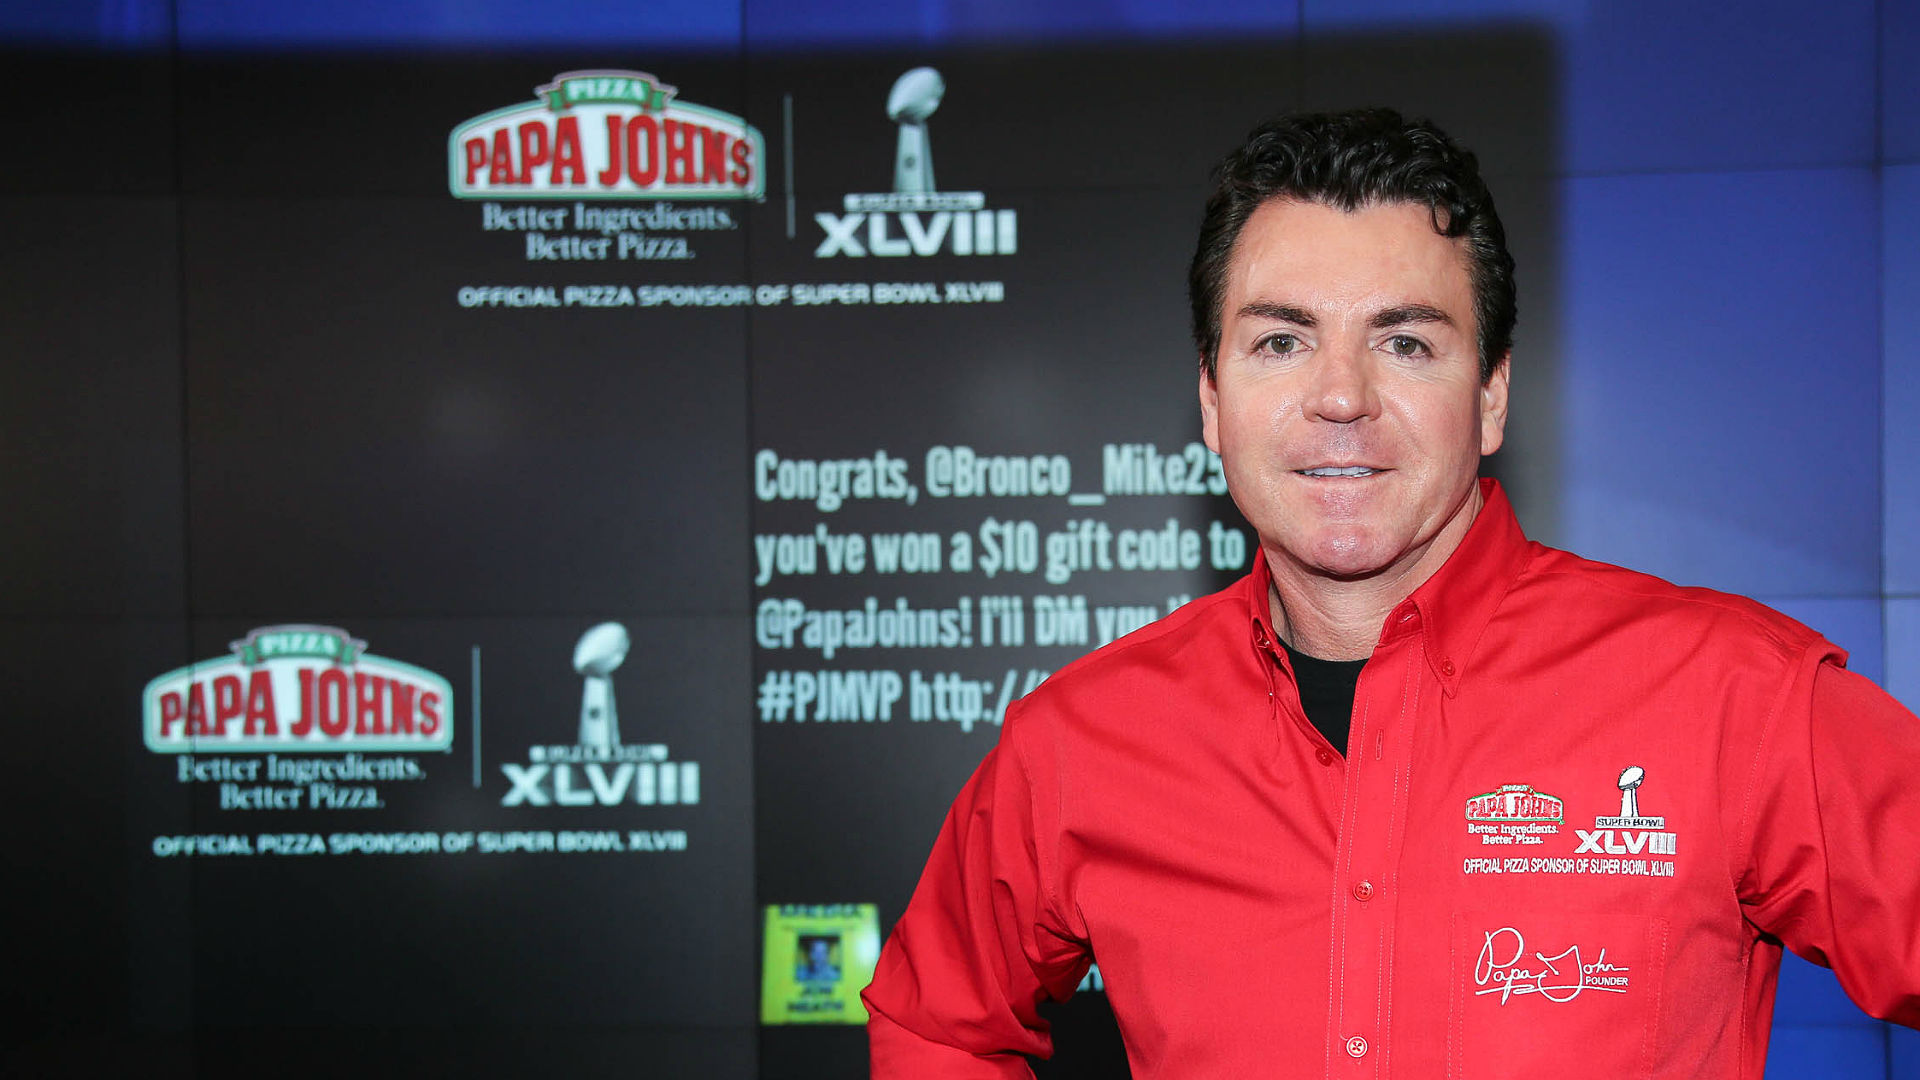 Papa John's Apologizes for Blaming Poor Sales on NFL Player Protests